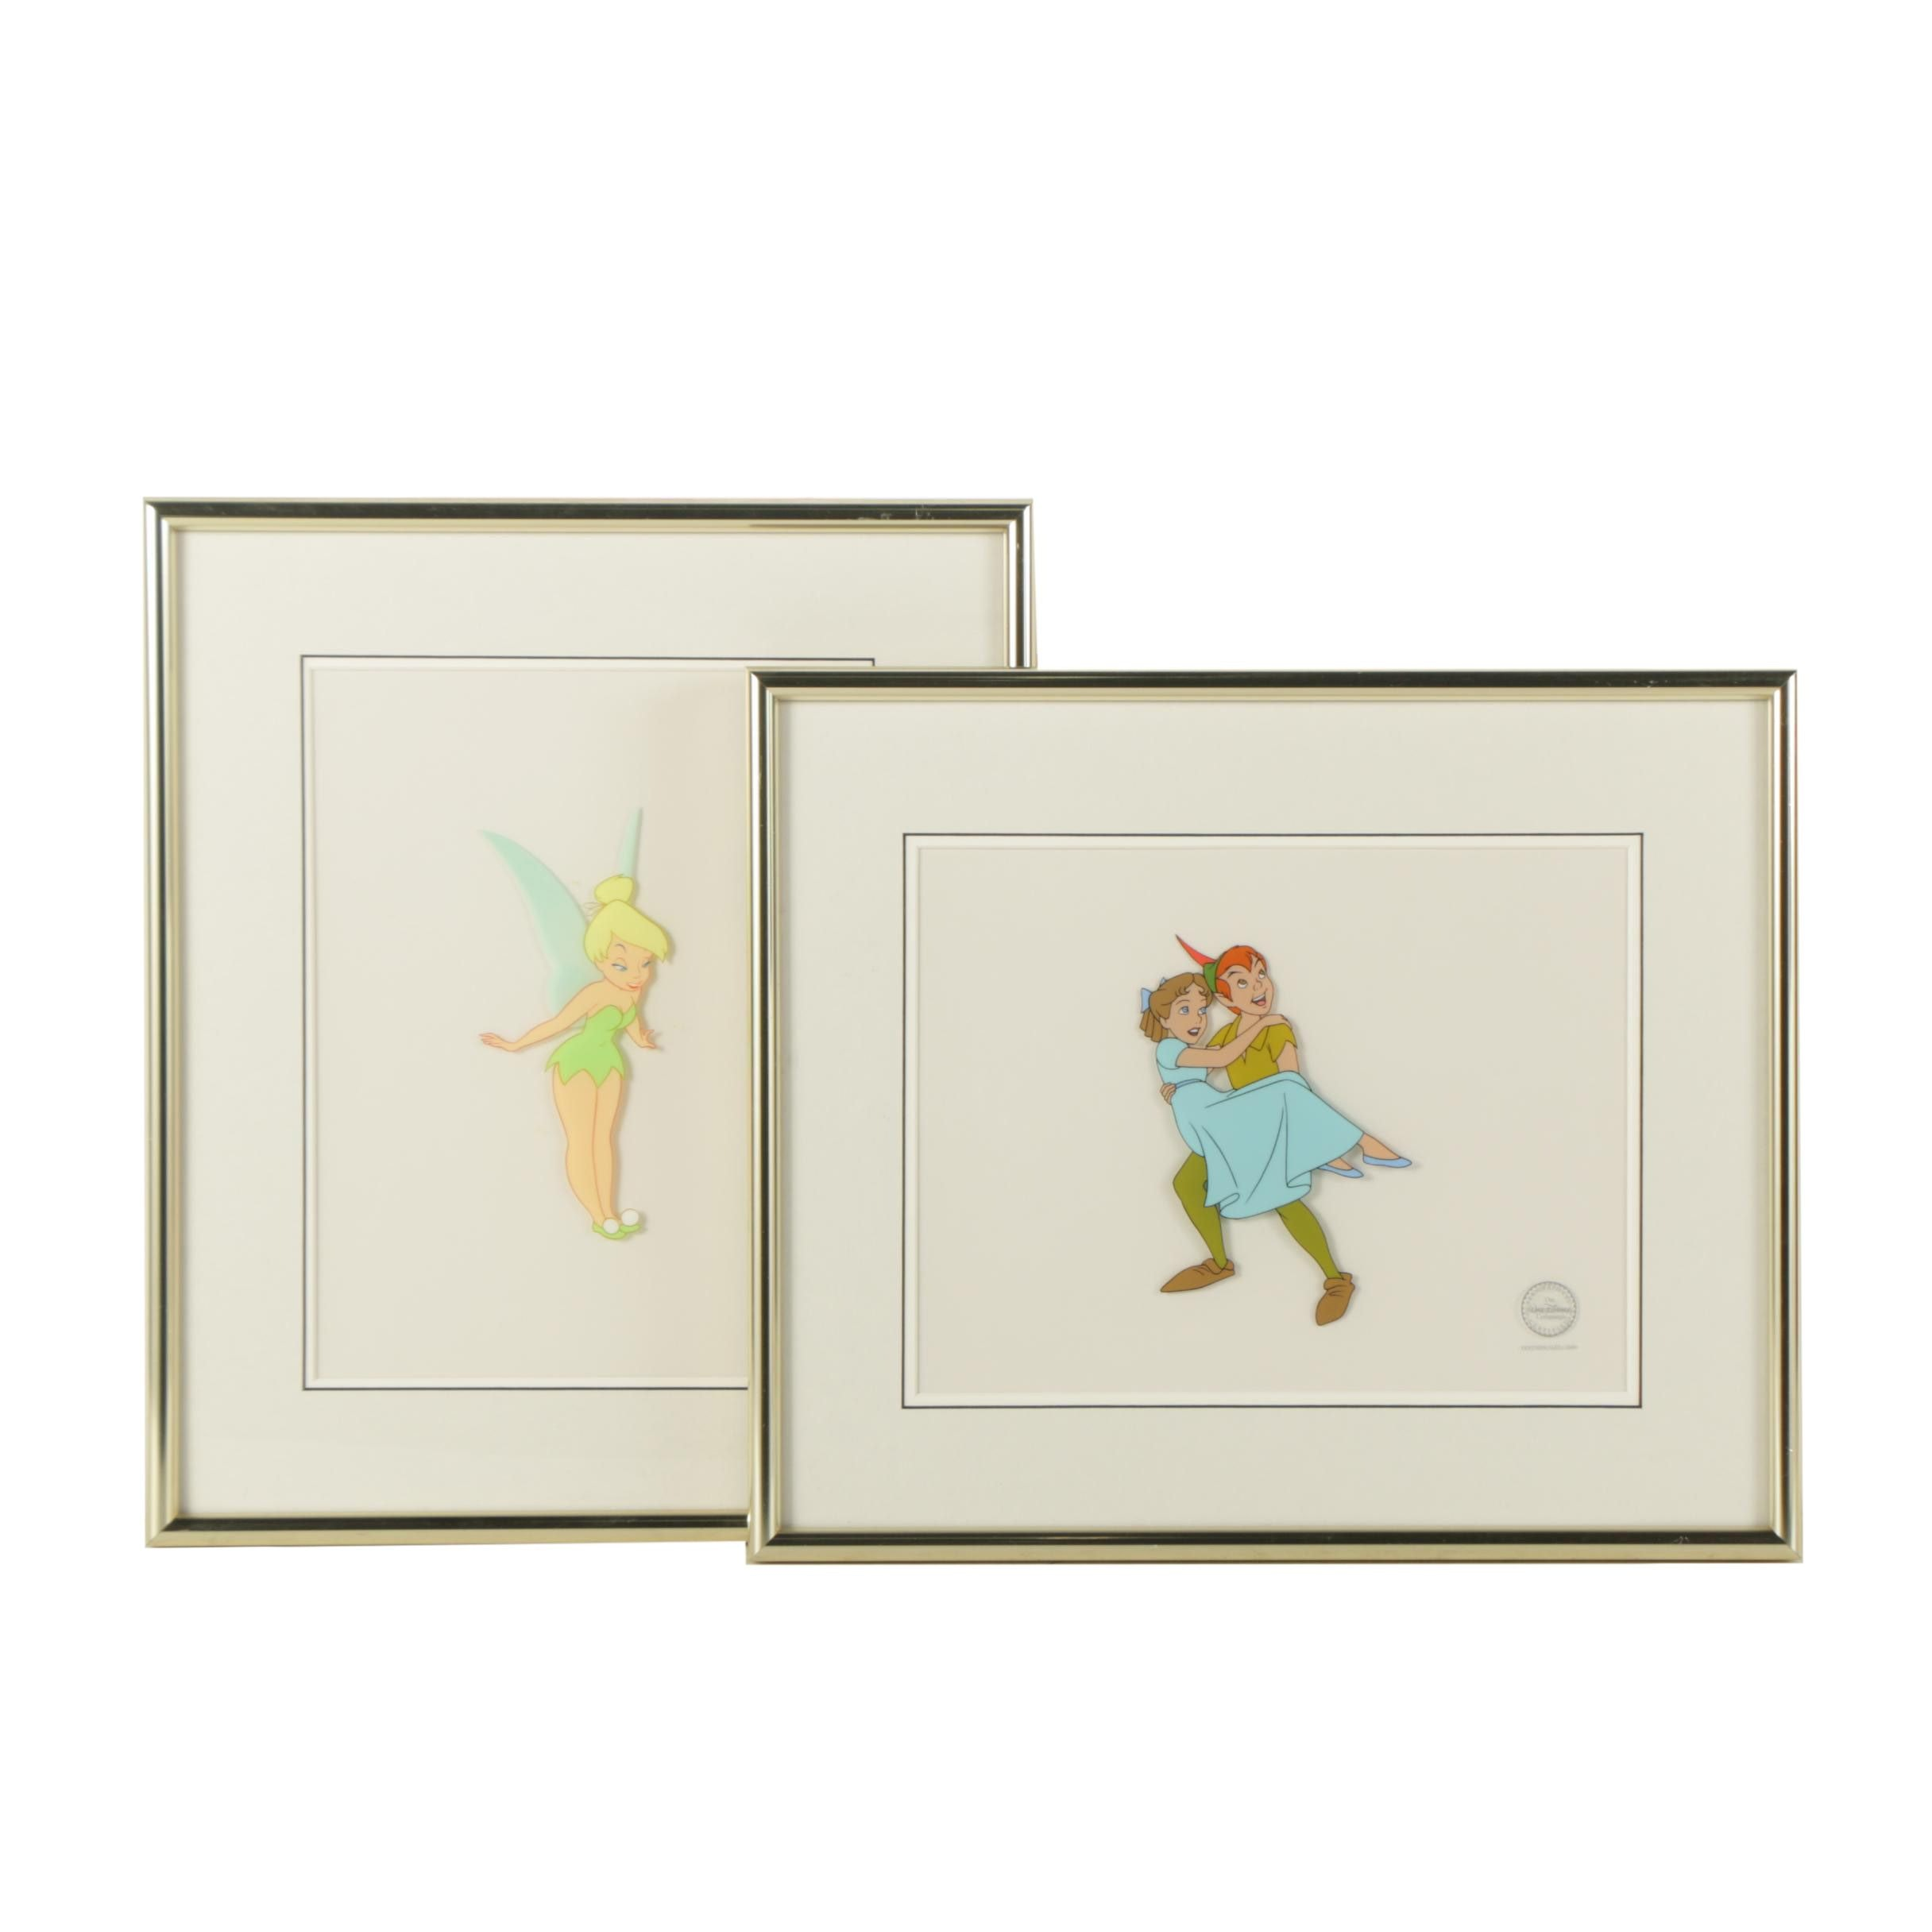 Limited Edition Walt Disney Animation Cels of Peter Pan and Wendy and Tinkerbell